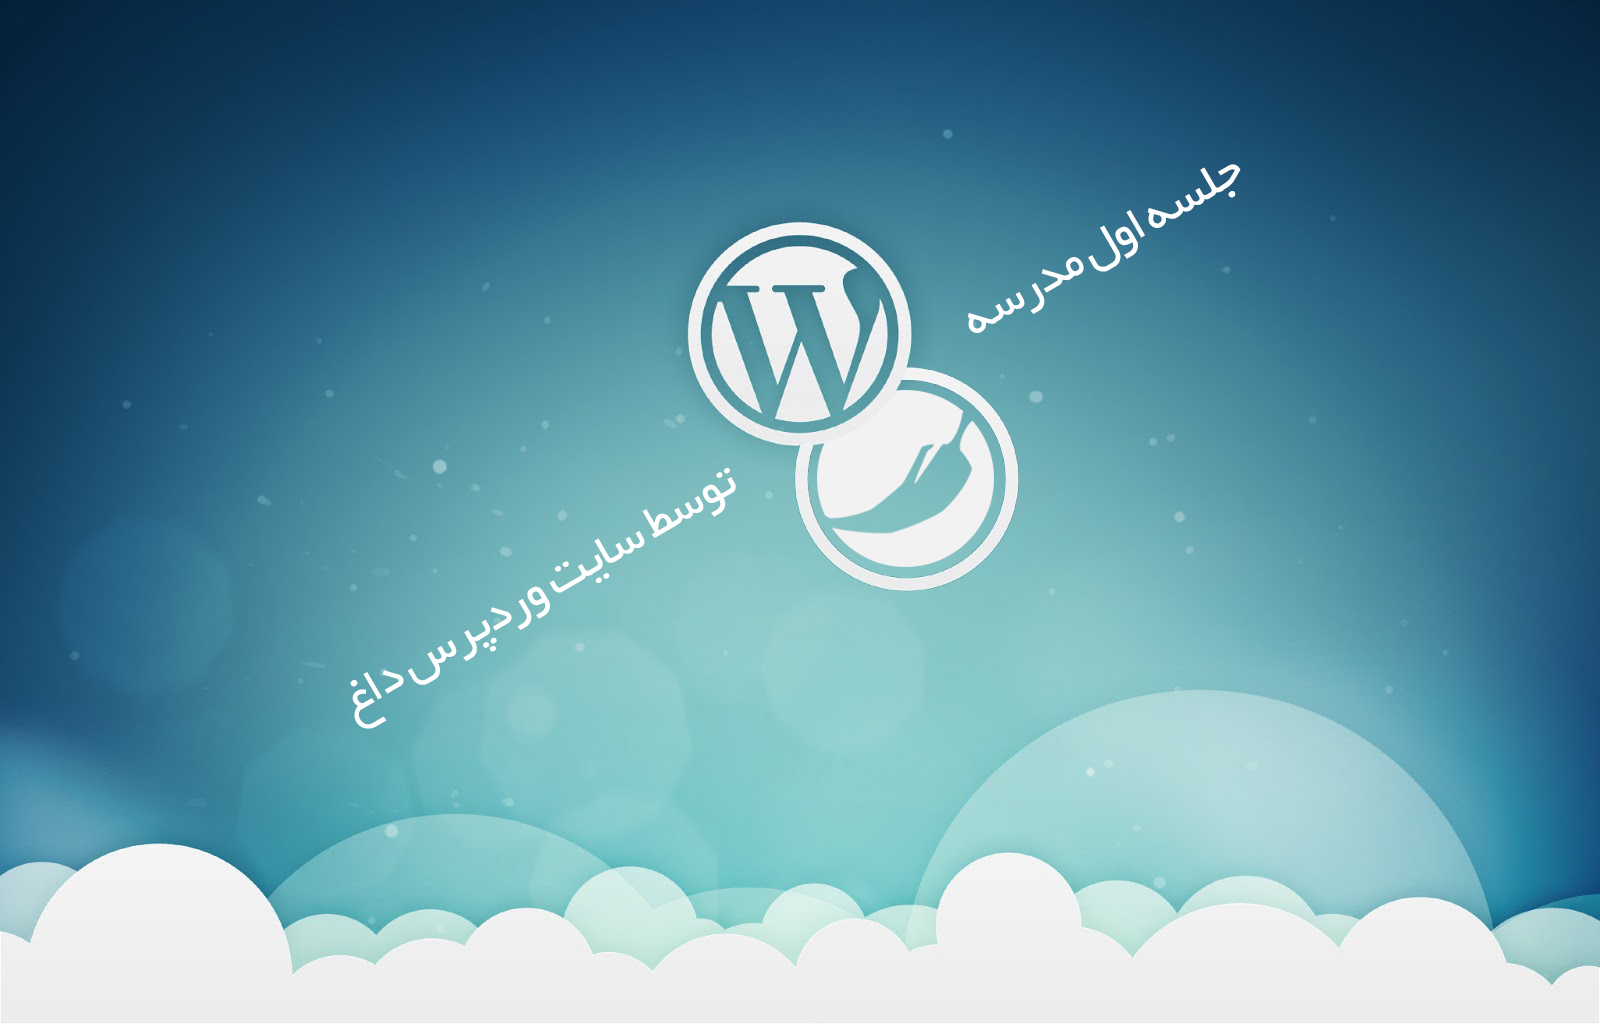 school-wordpress-redwp-1